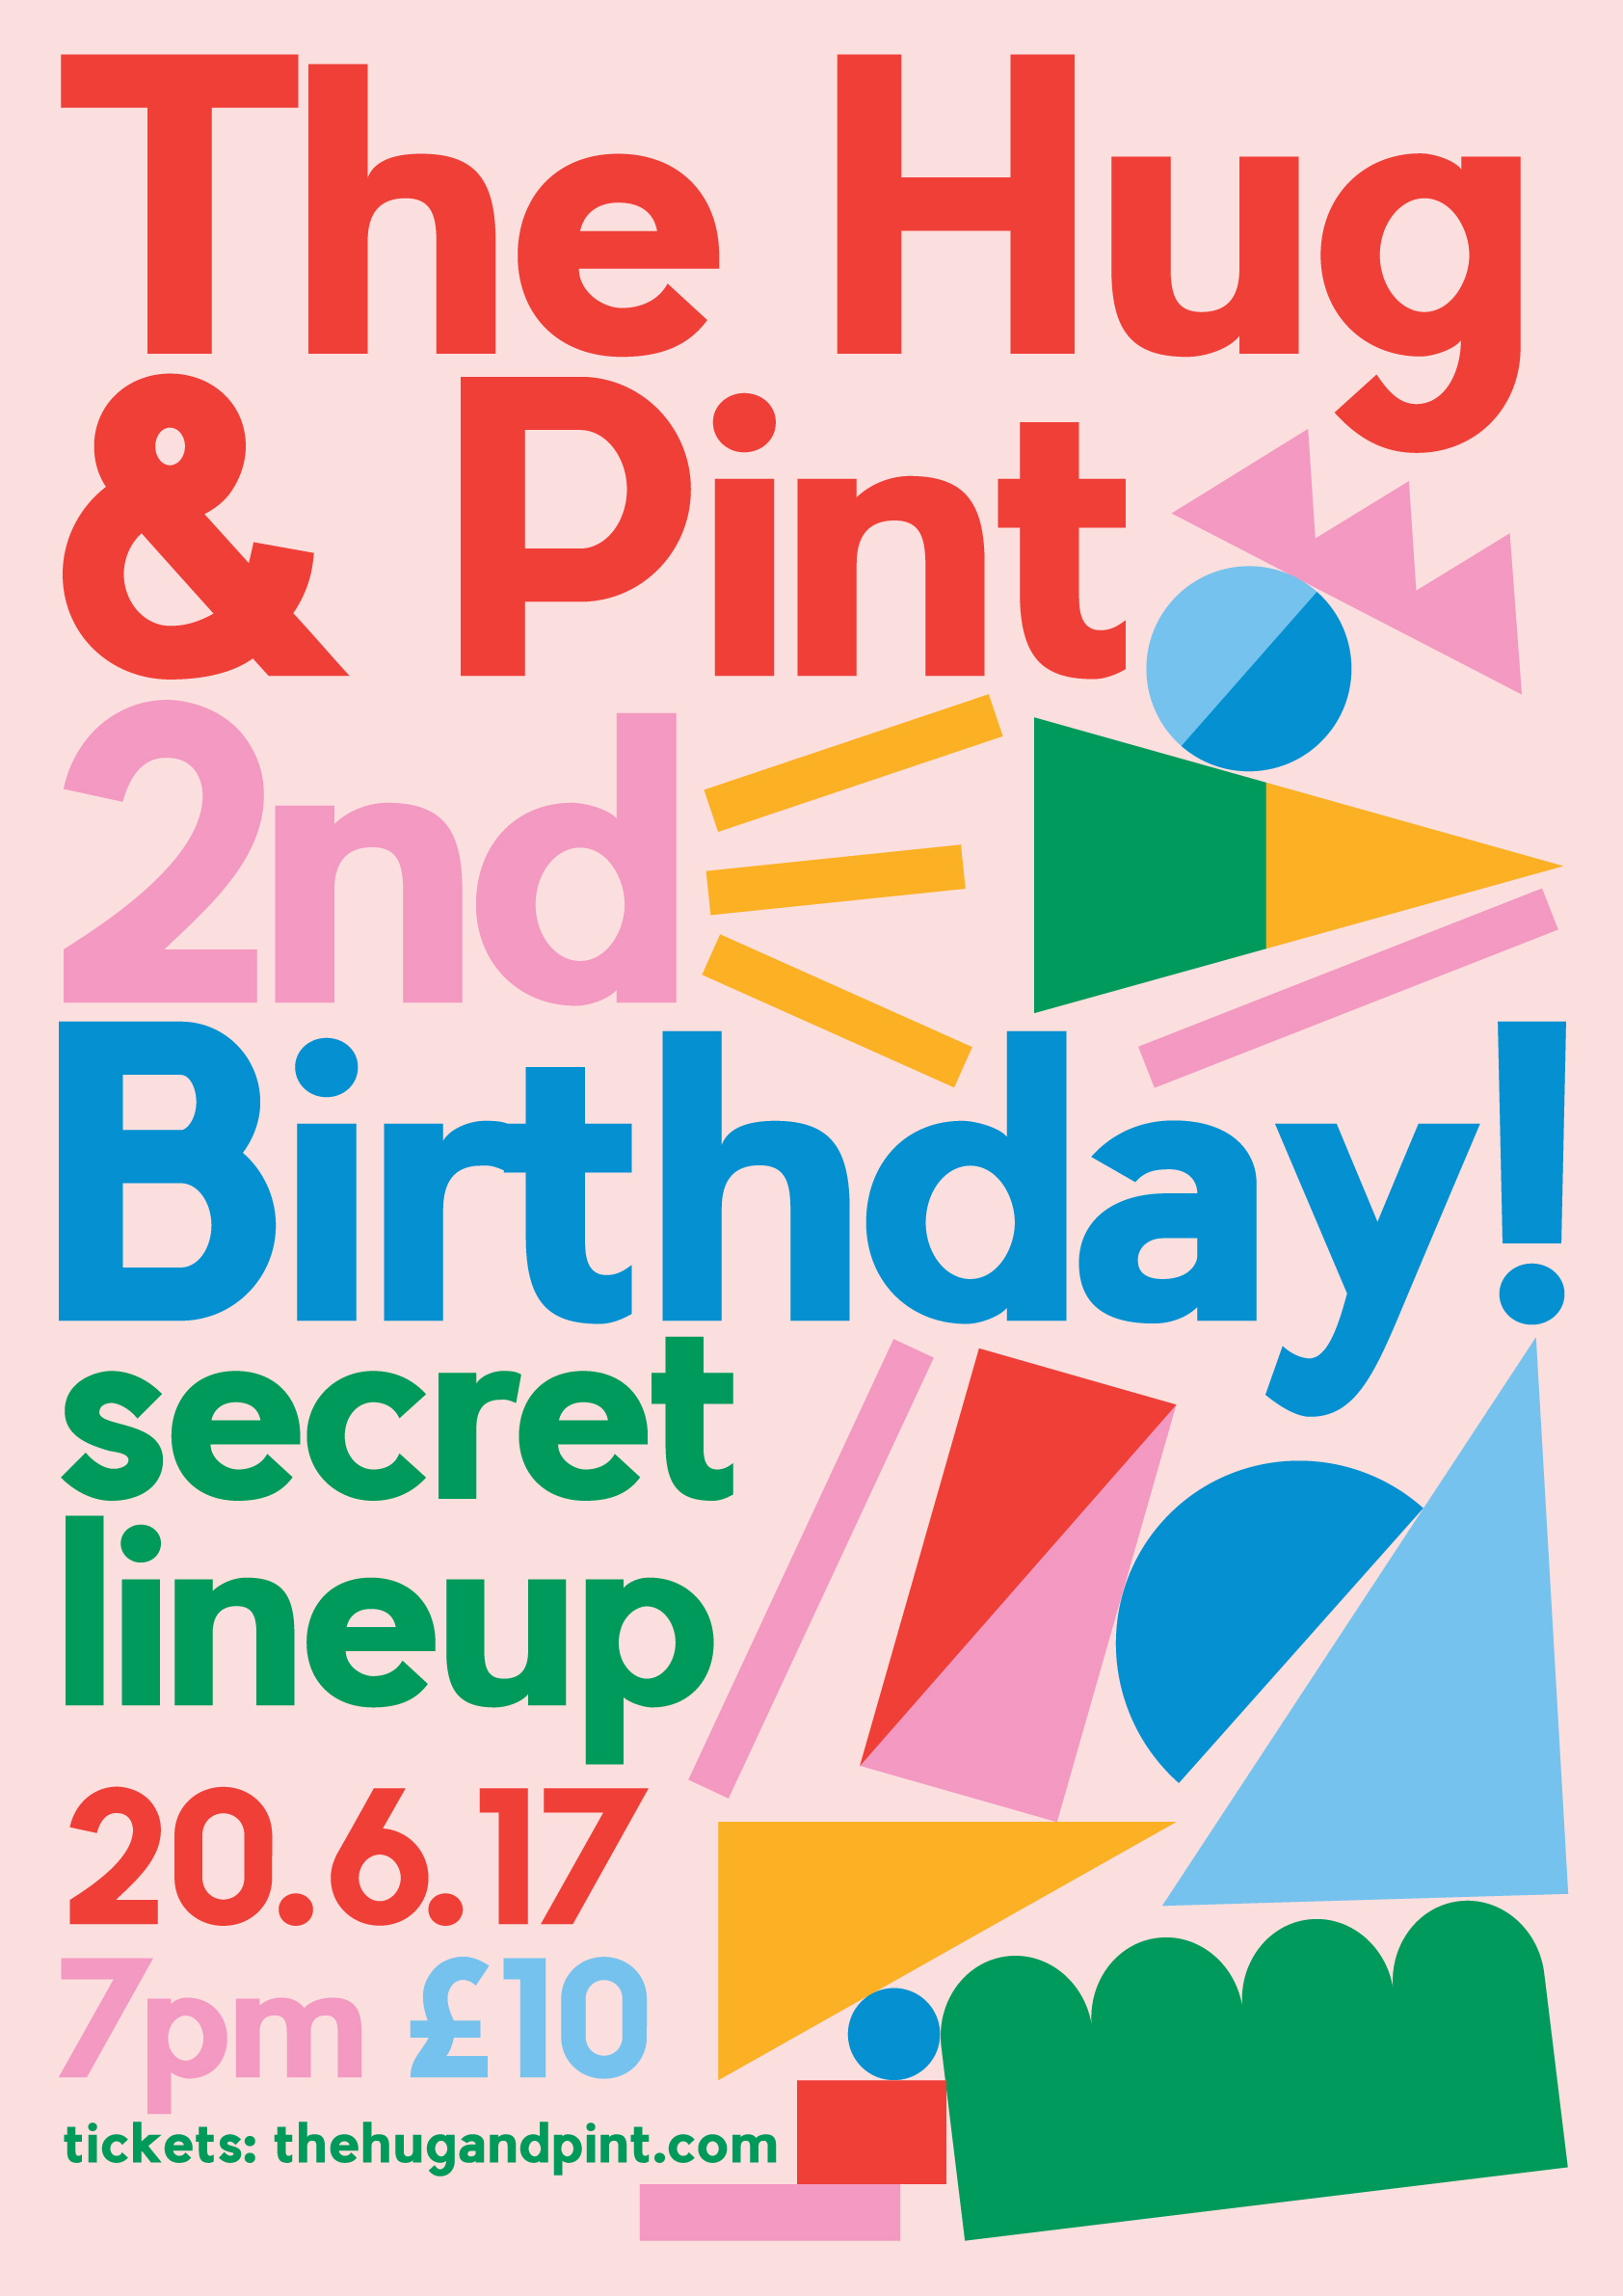 The Hug and Pint 2nd Birthday!